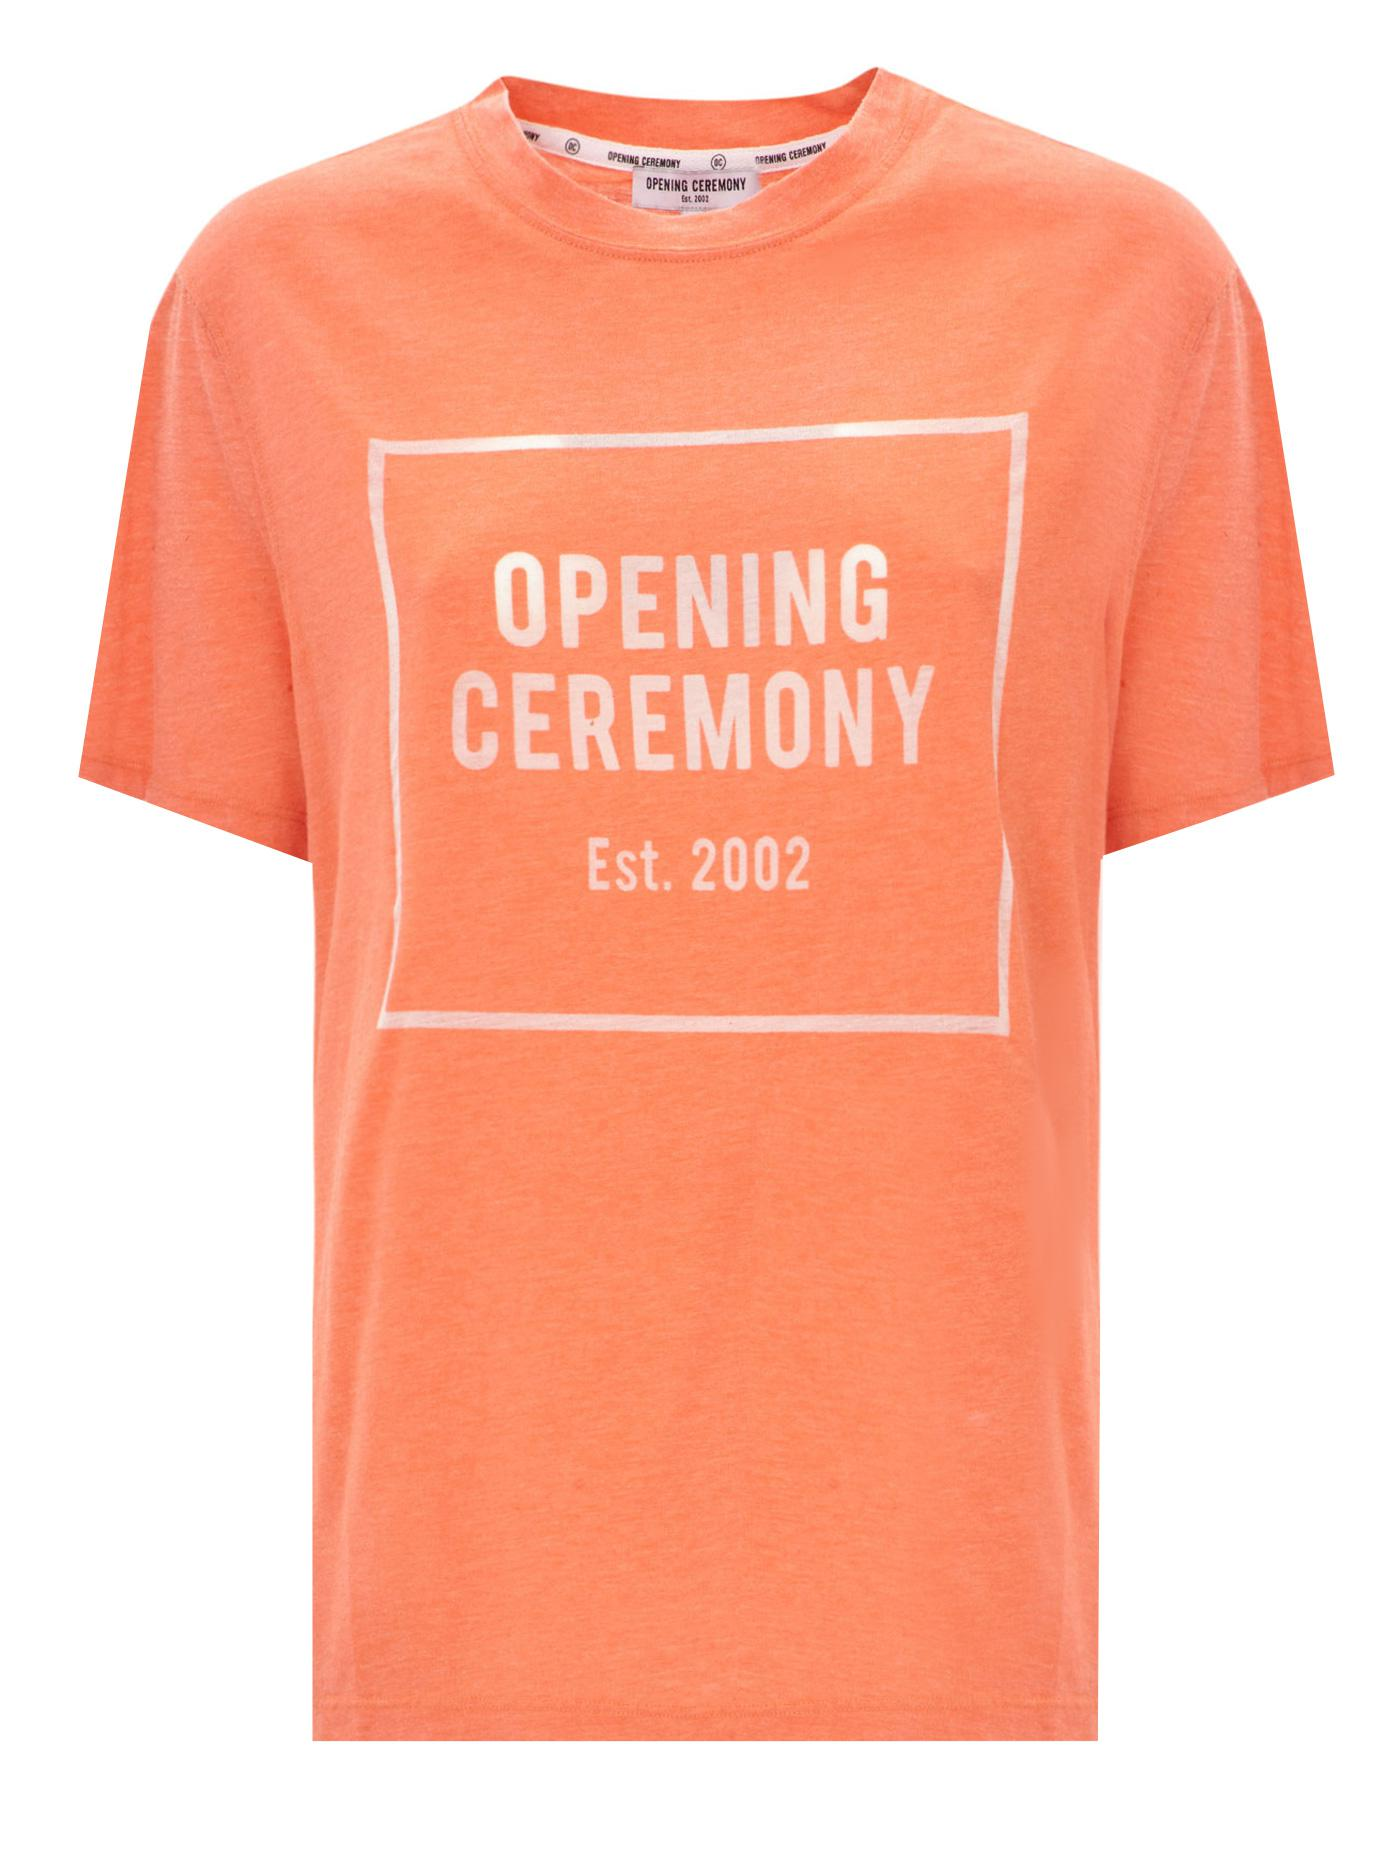 Opening Ceremony Fall 2015: Opening Ceremony Logo T-shirt In Orange